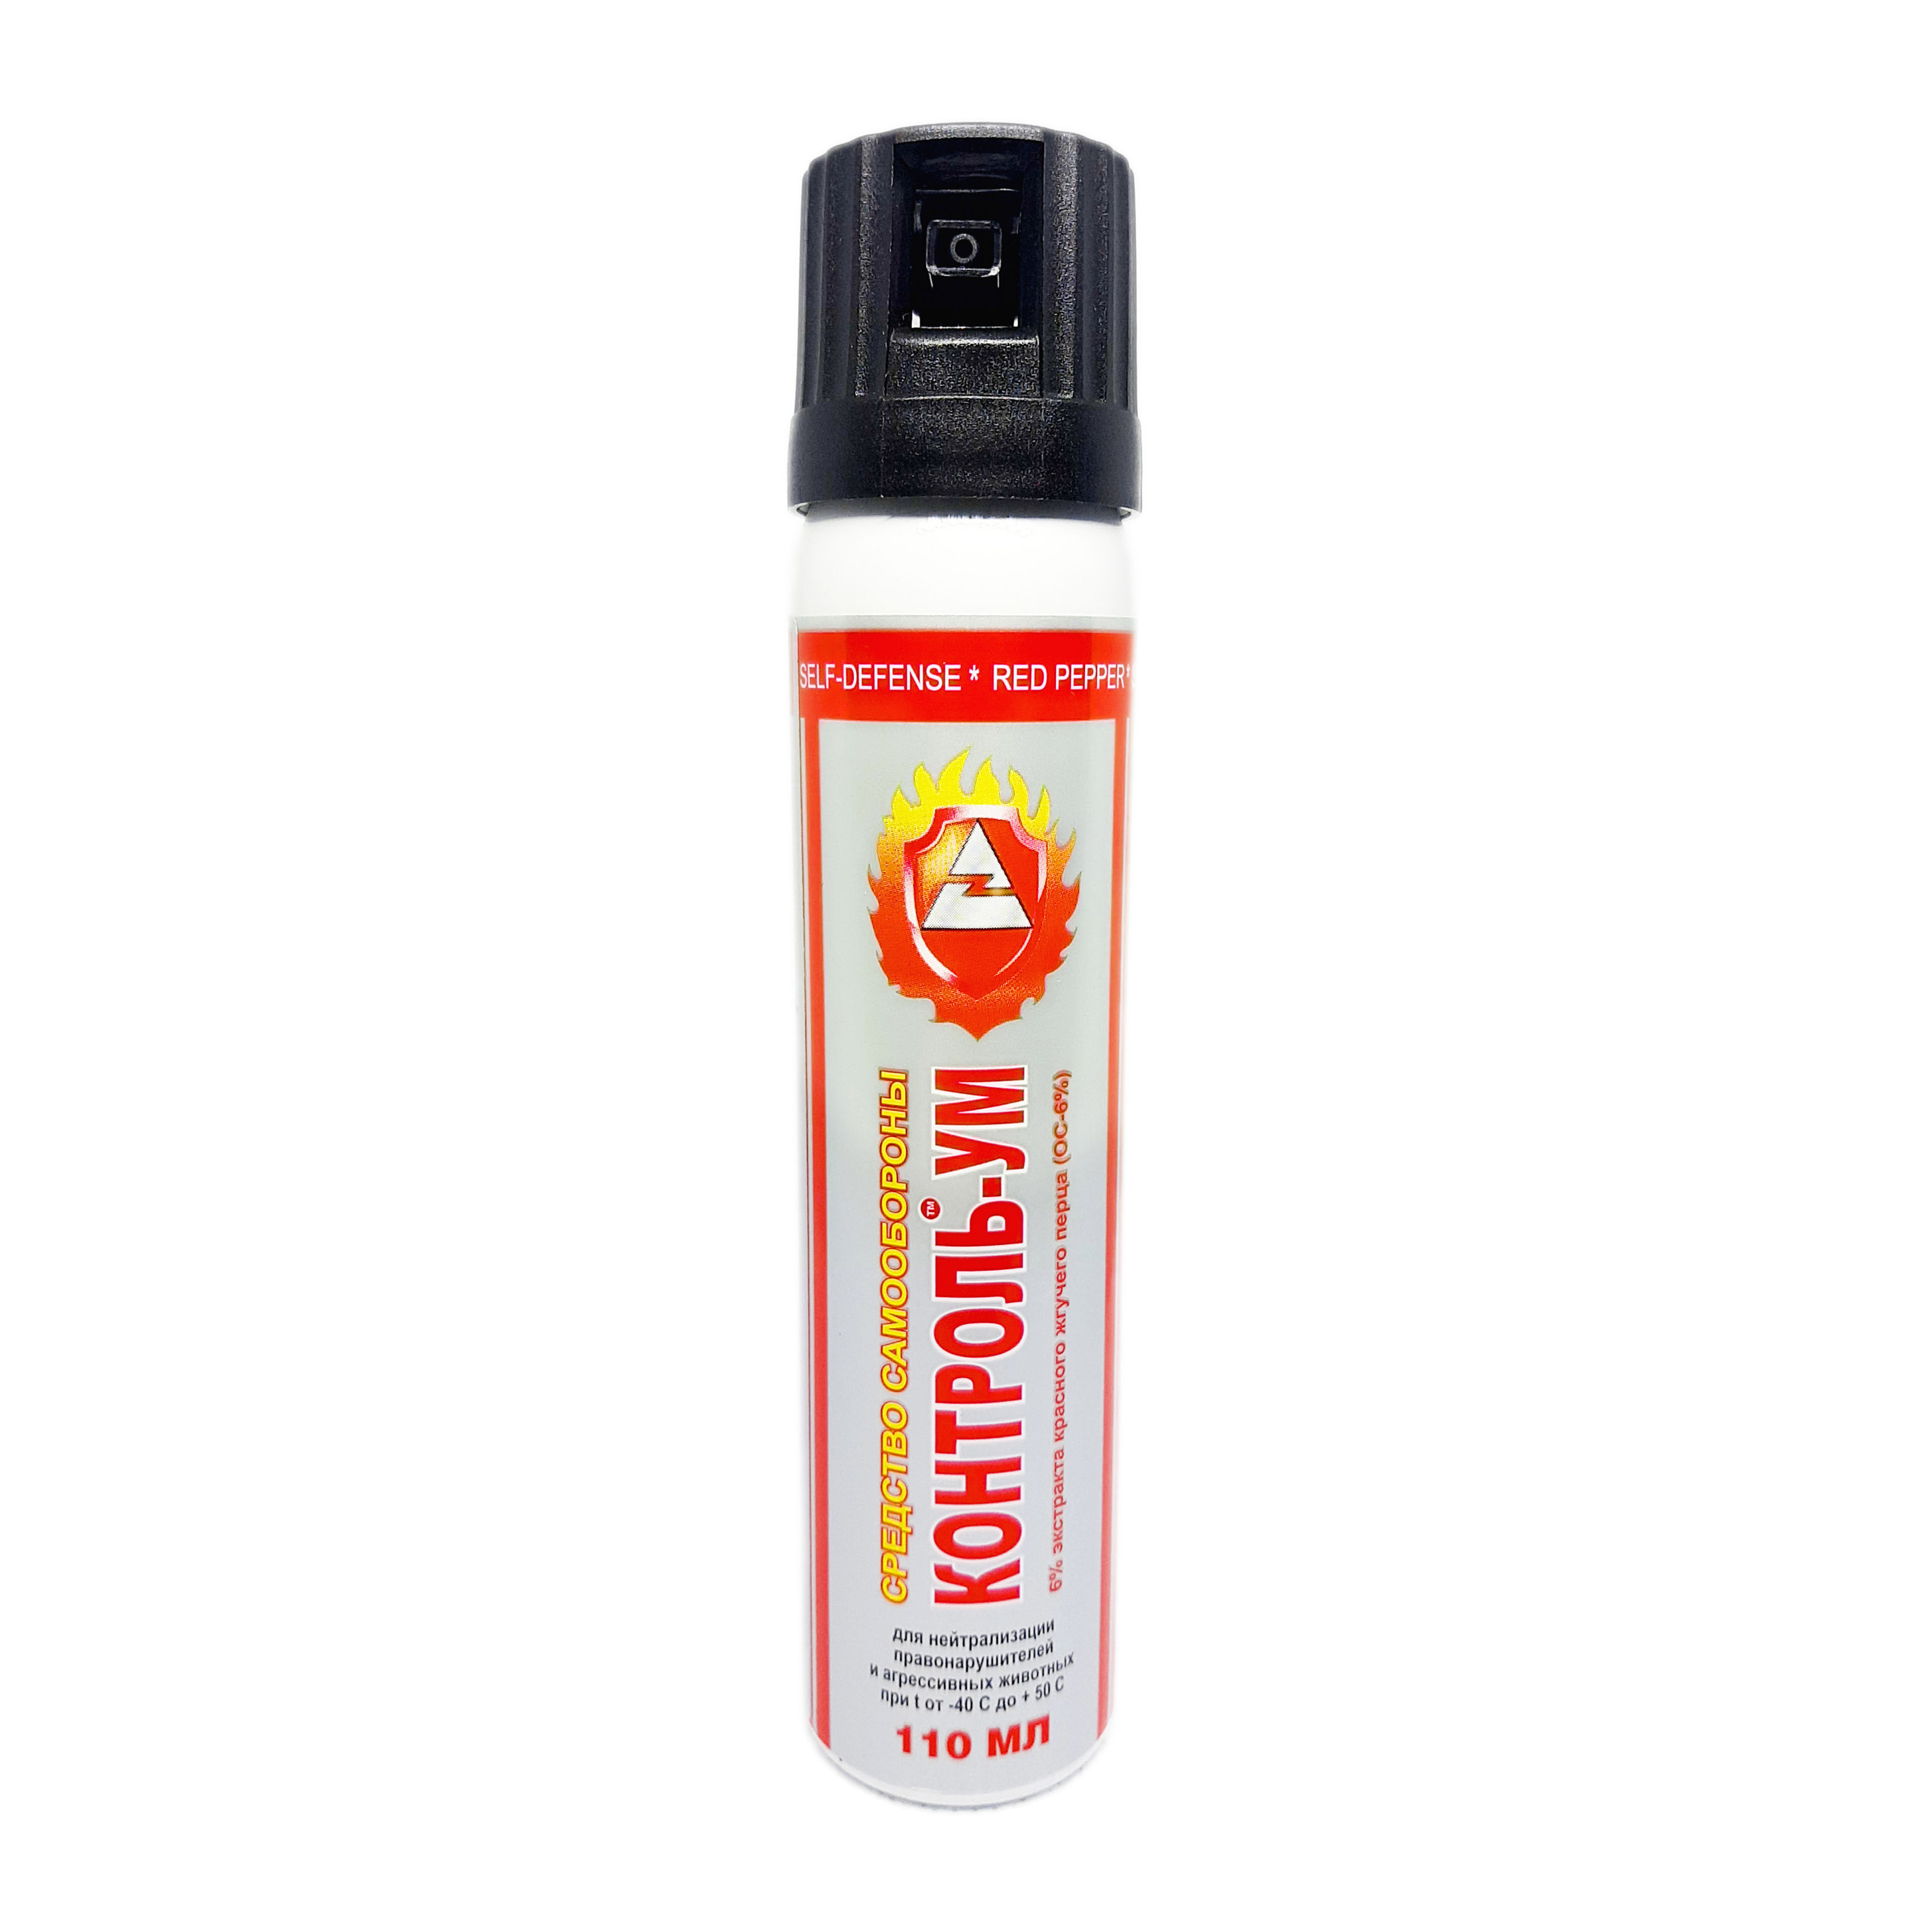 Control-UM 110 ml Personal Self Defence Pepper Spray